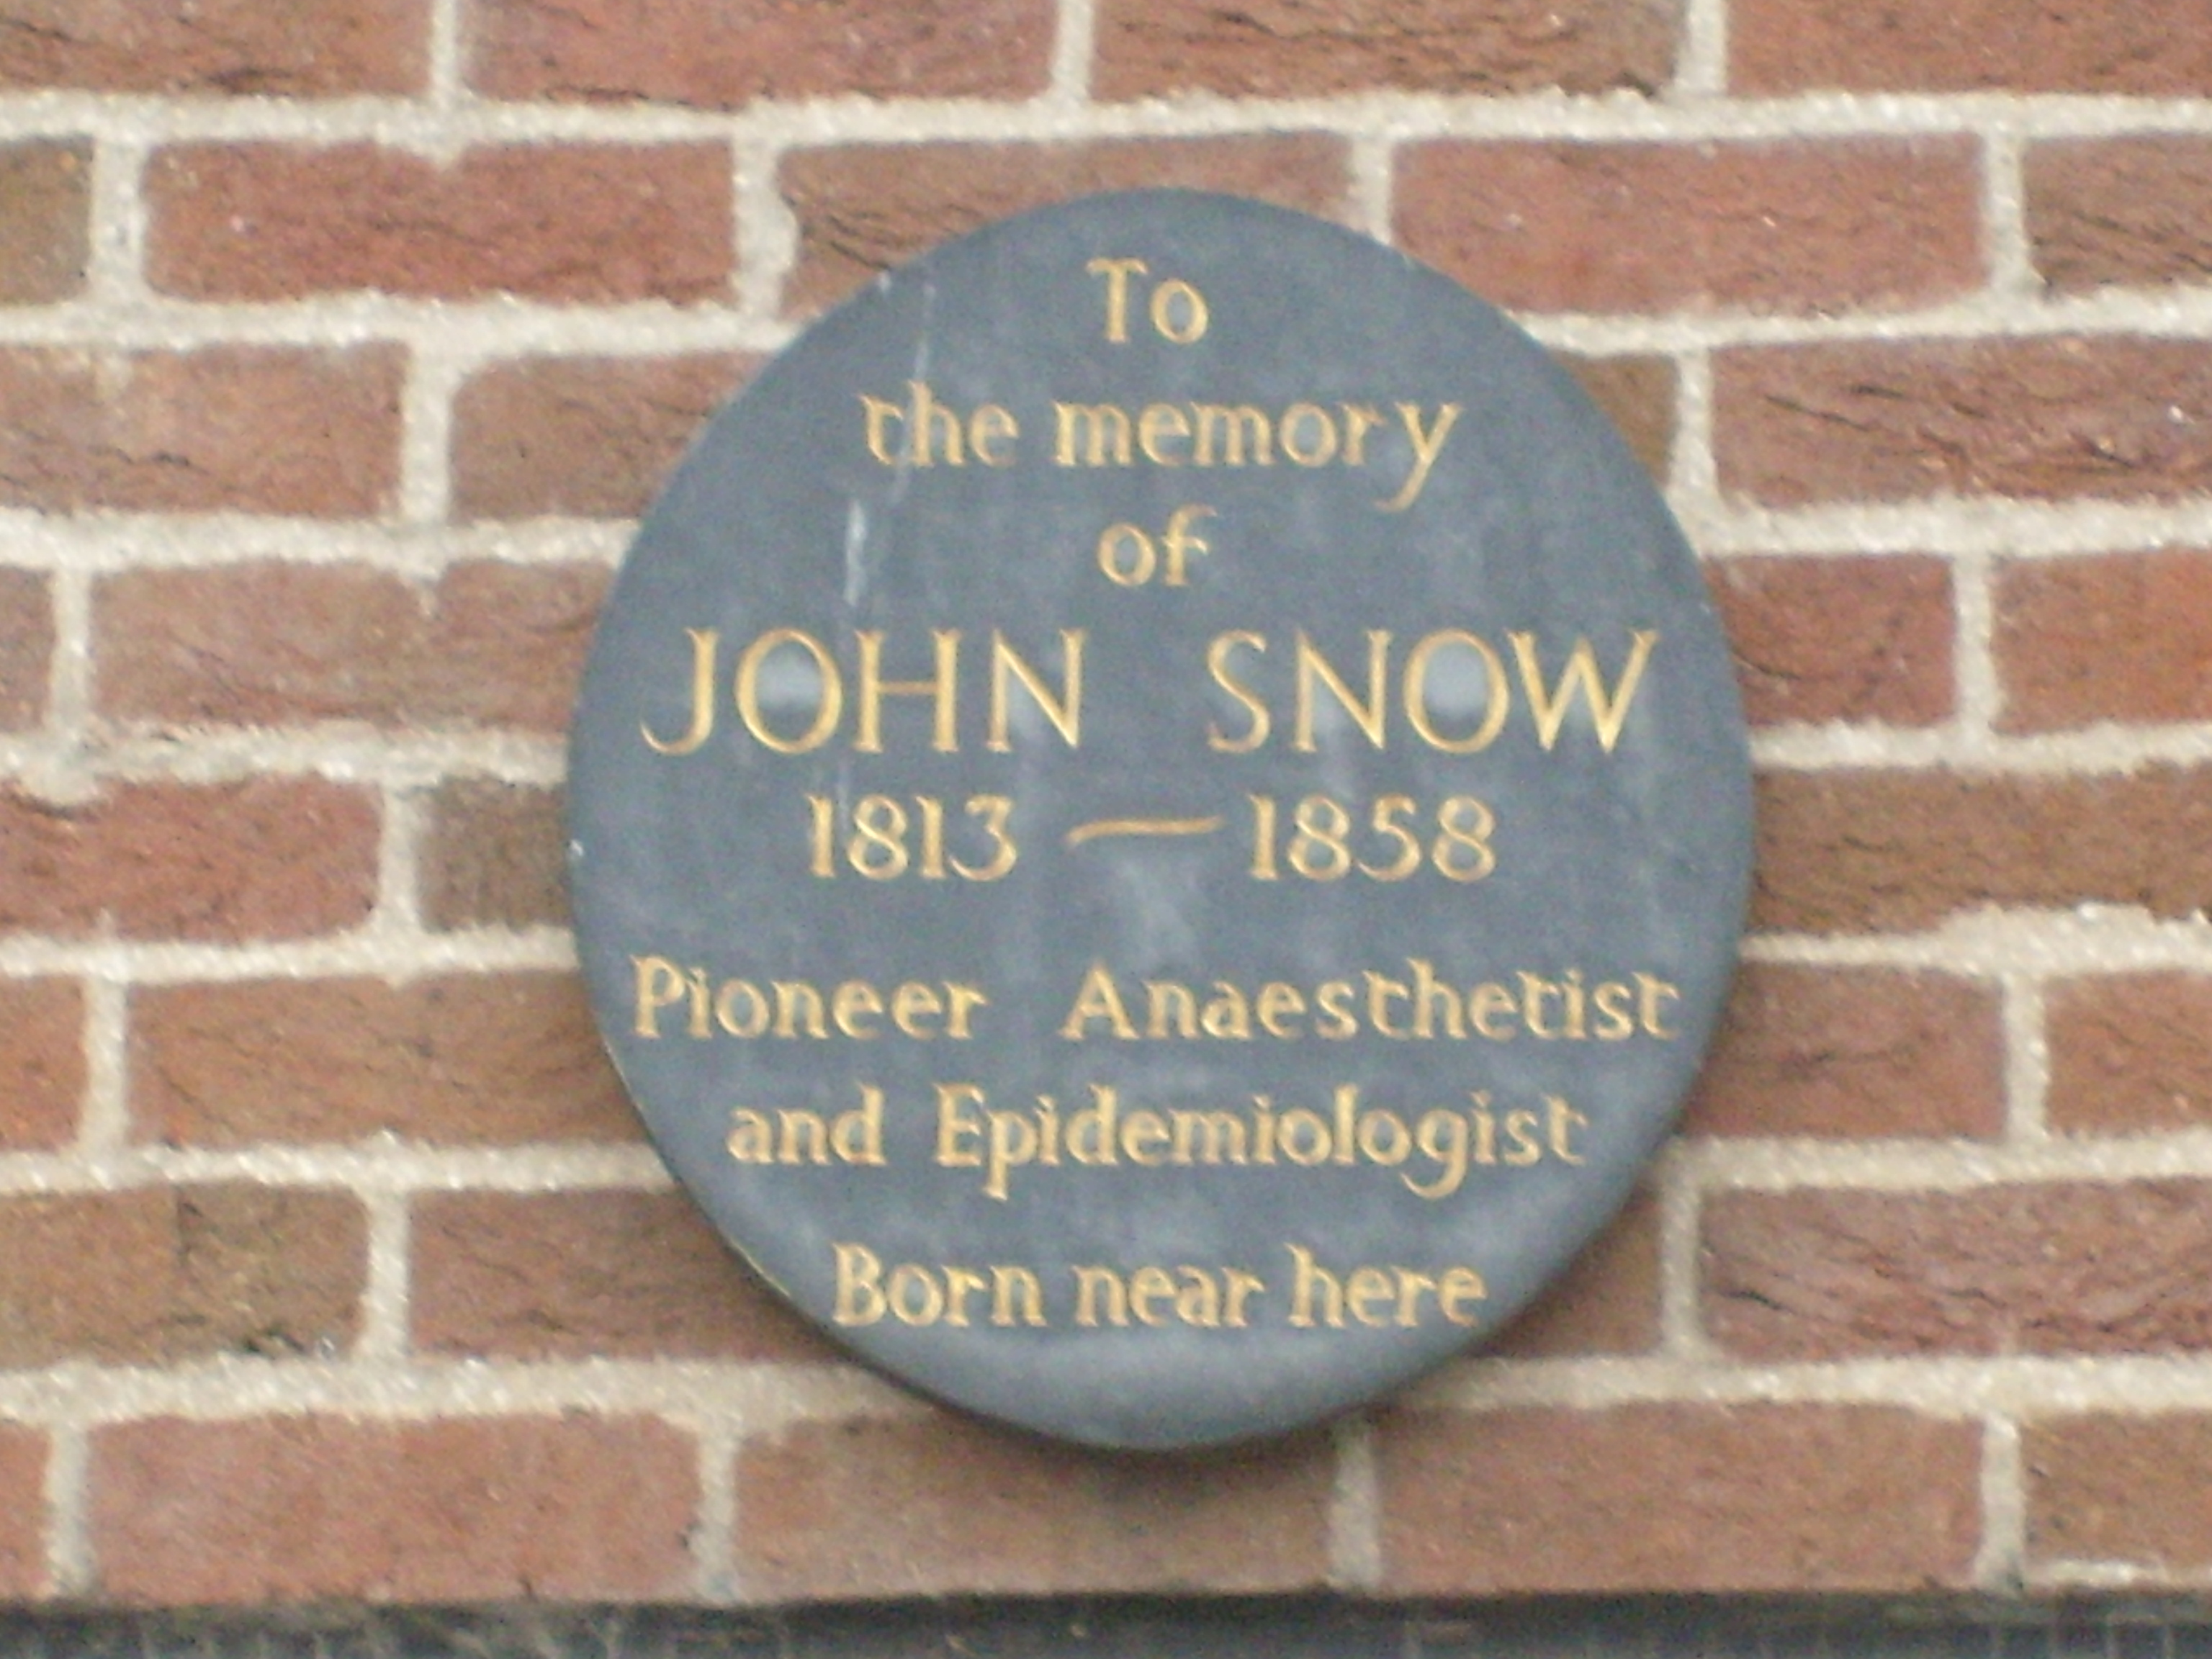 Image: Plaque in North Street in memory of John Snow. Credit: Sally Stephenson